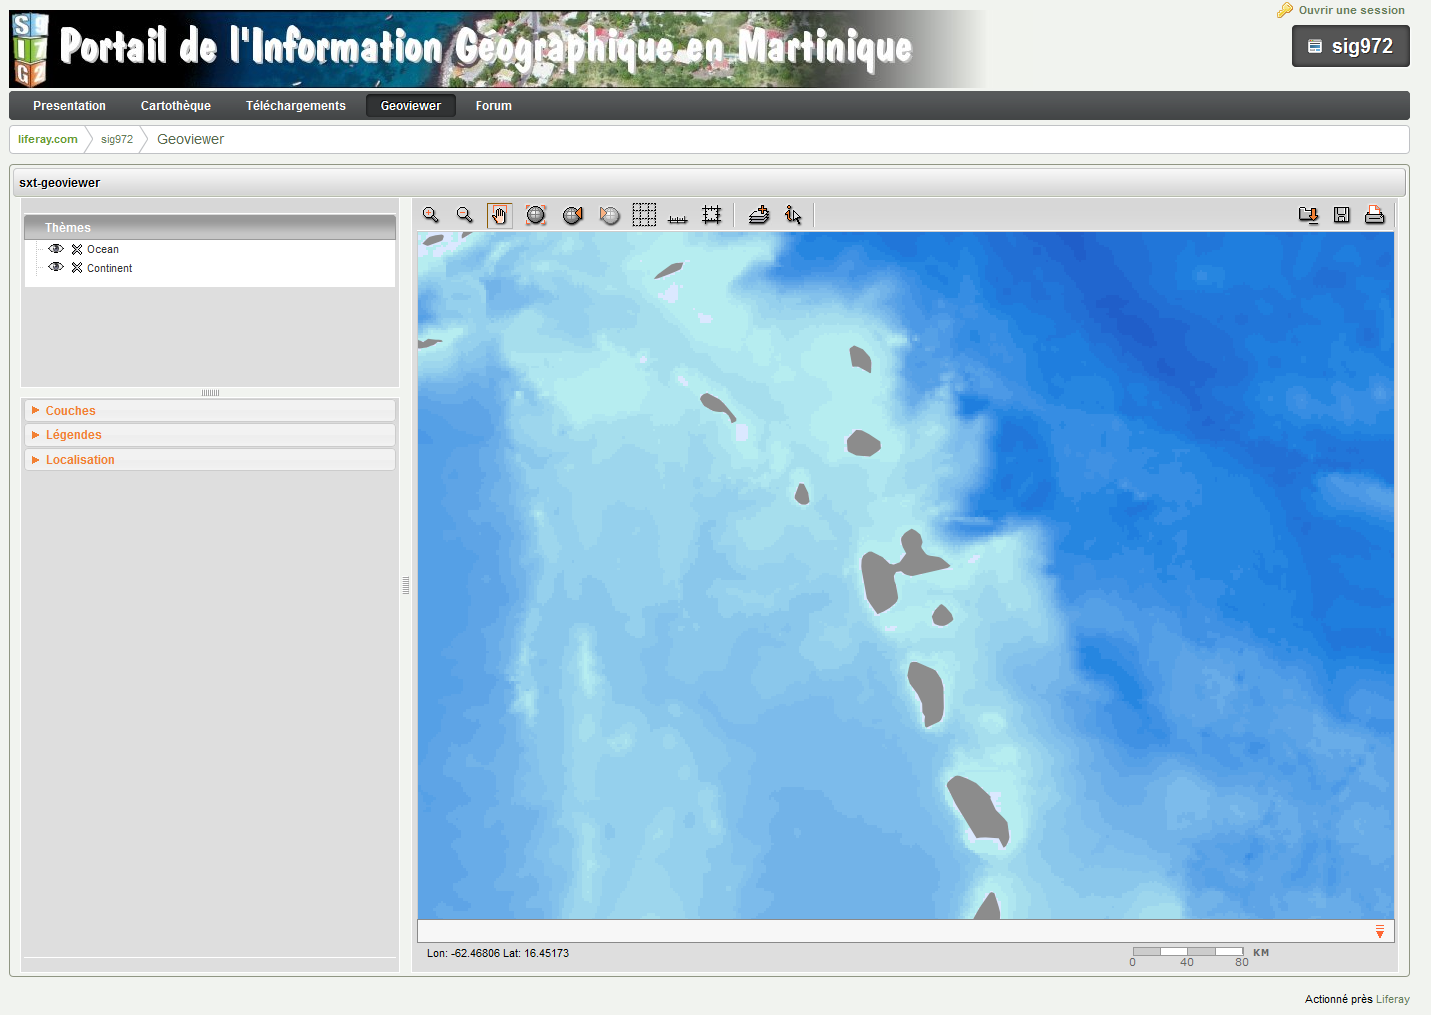 Martinique Geographical Information Portal (SIG972)